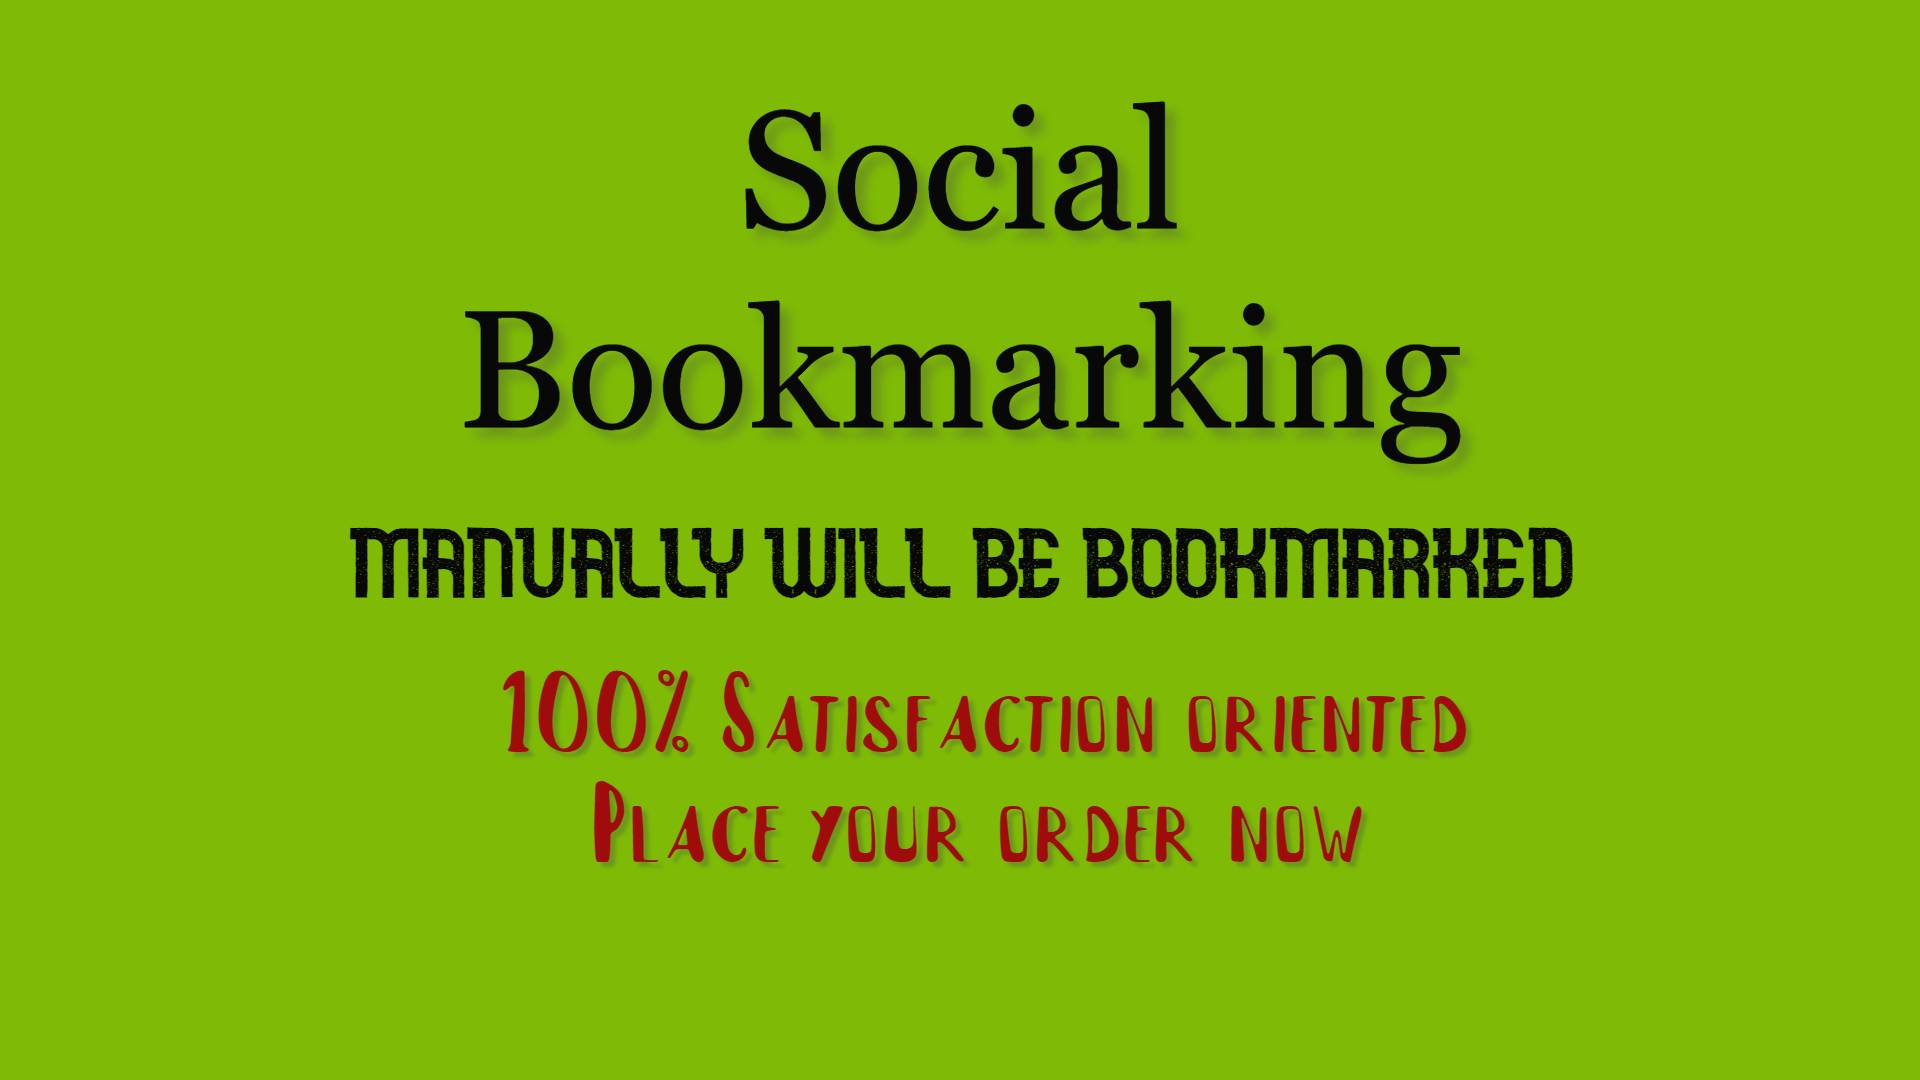 30 Manual social bookmarking with backlinks